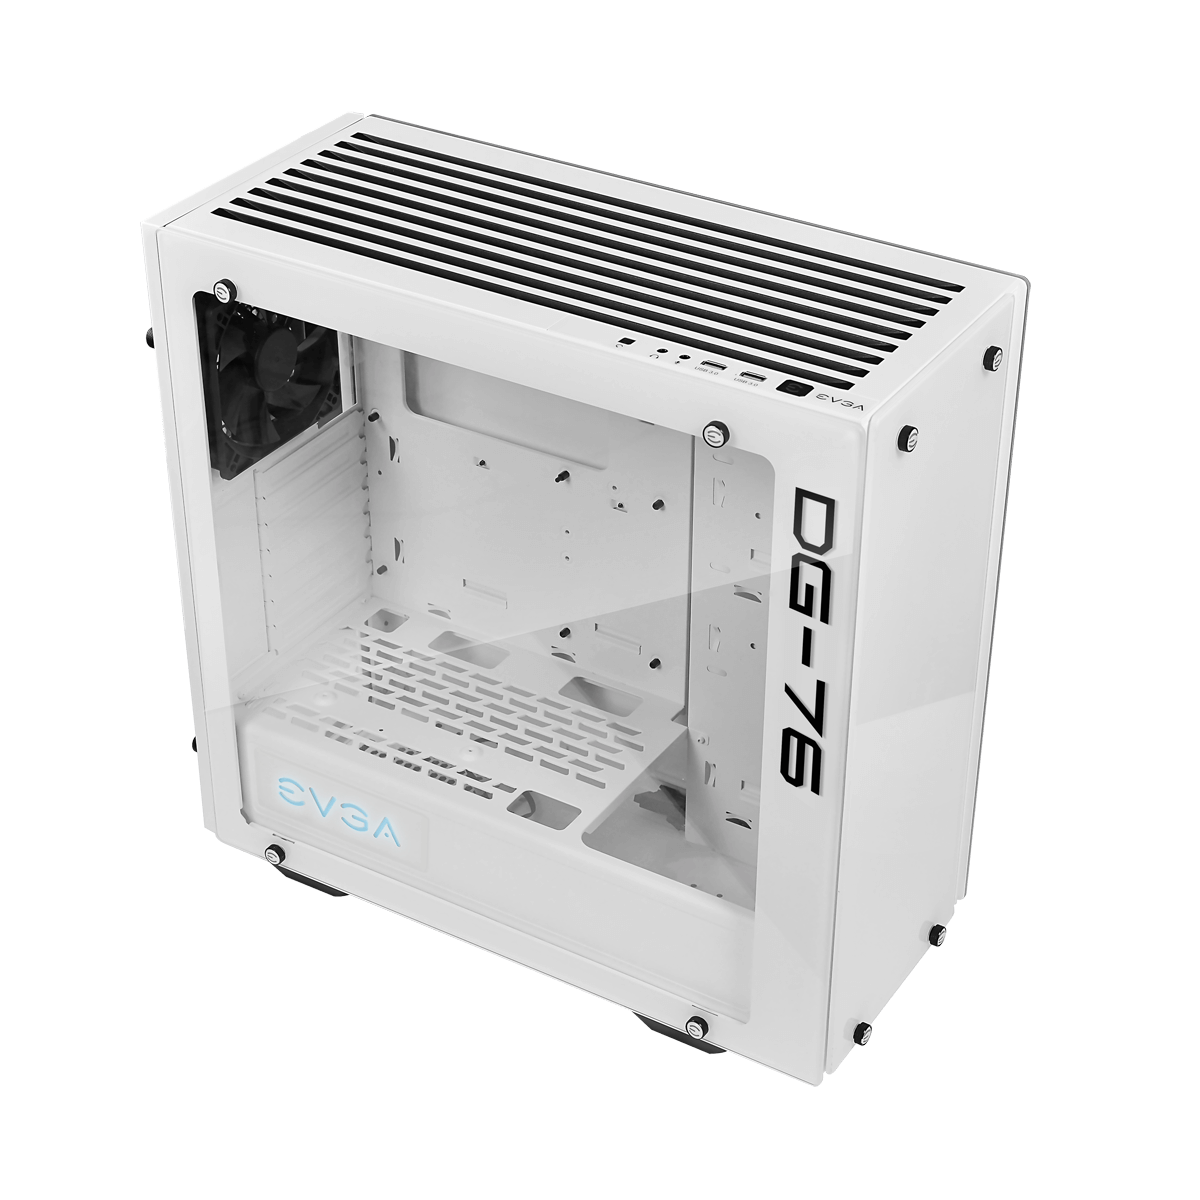 EVGA DG-76 Midi Tower Chasis with Tempered Glass - Alpine White - 166-W1-2232-KR